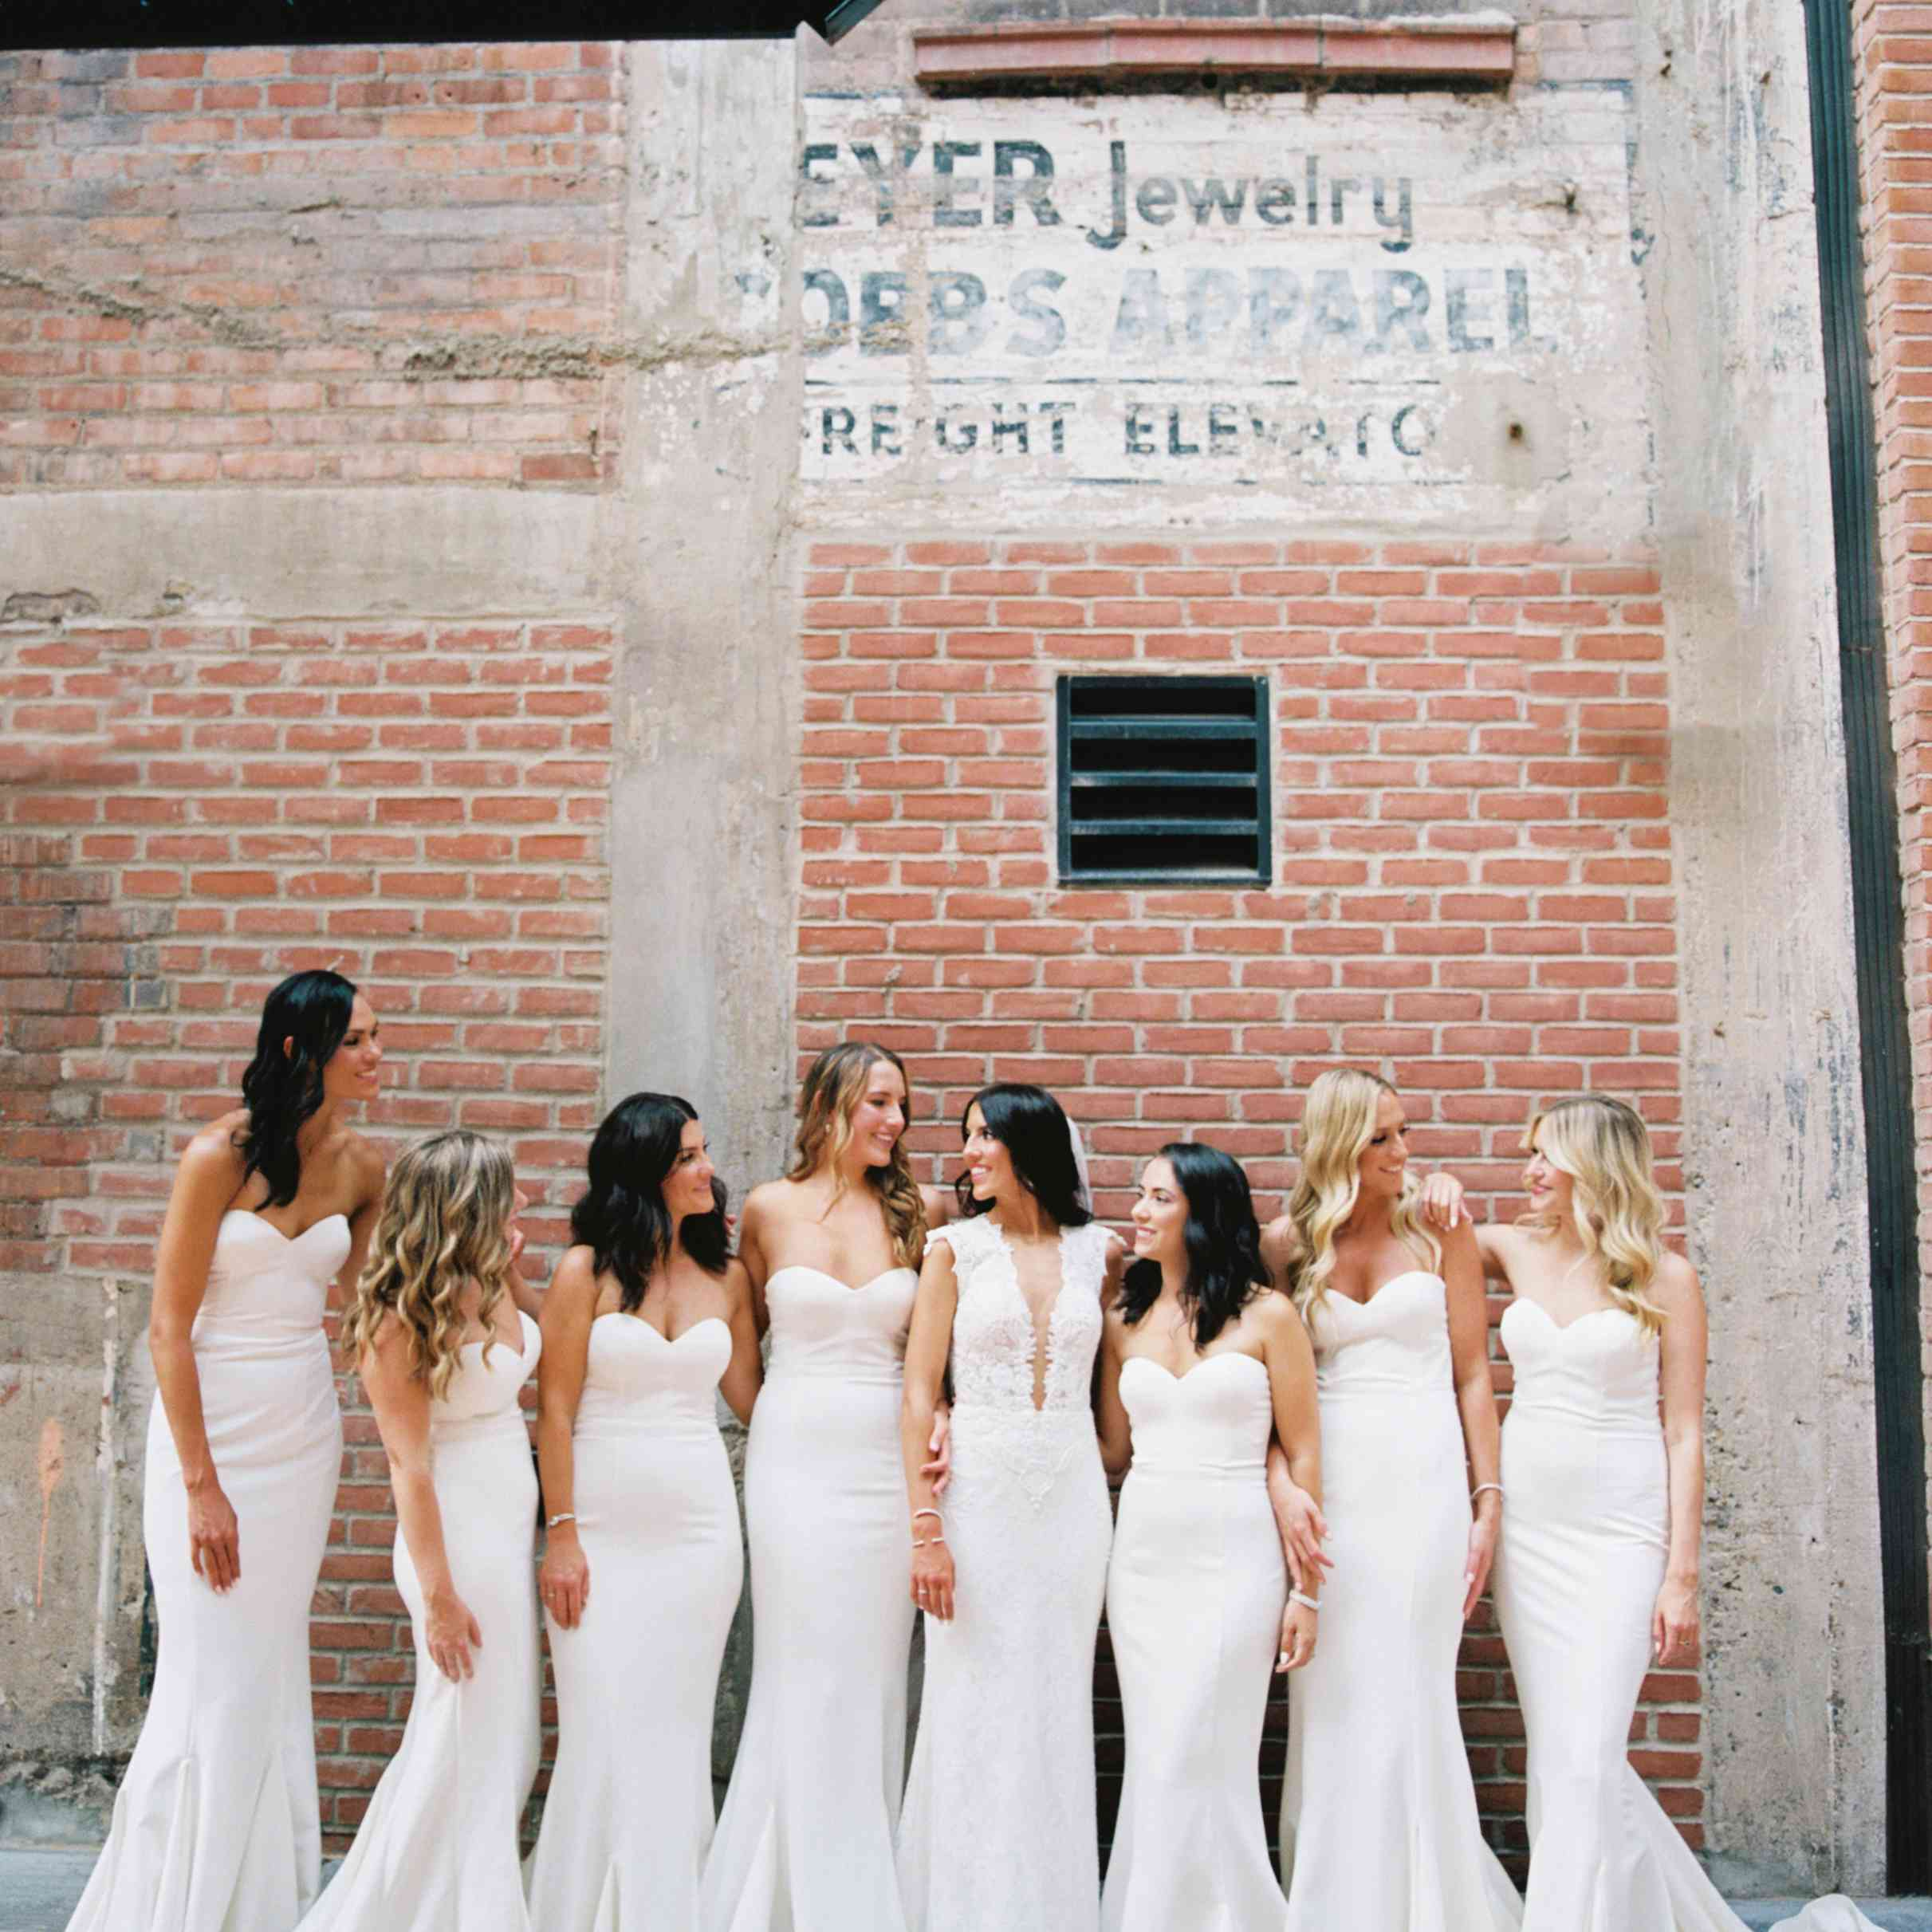 Portrait of the bride with her bridesmaids